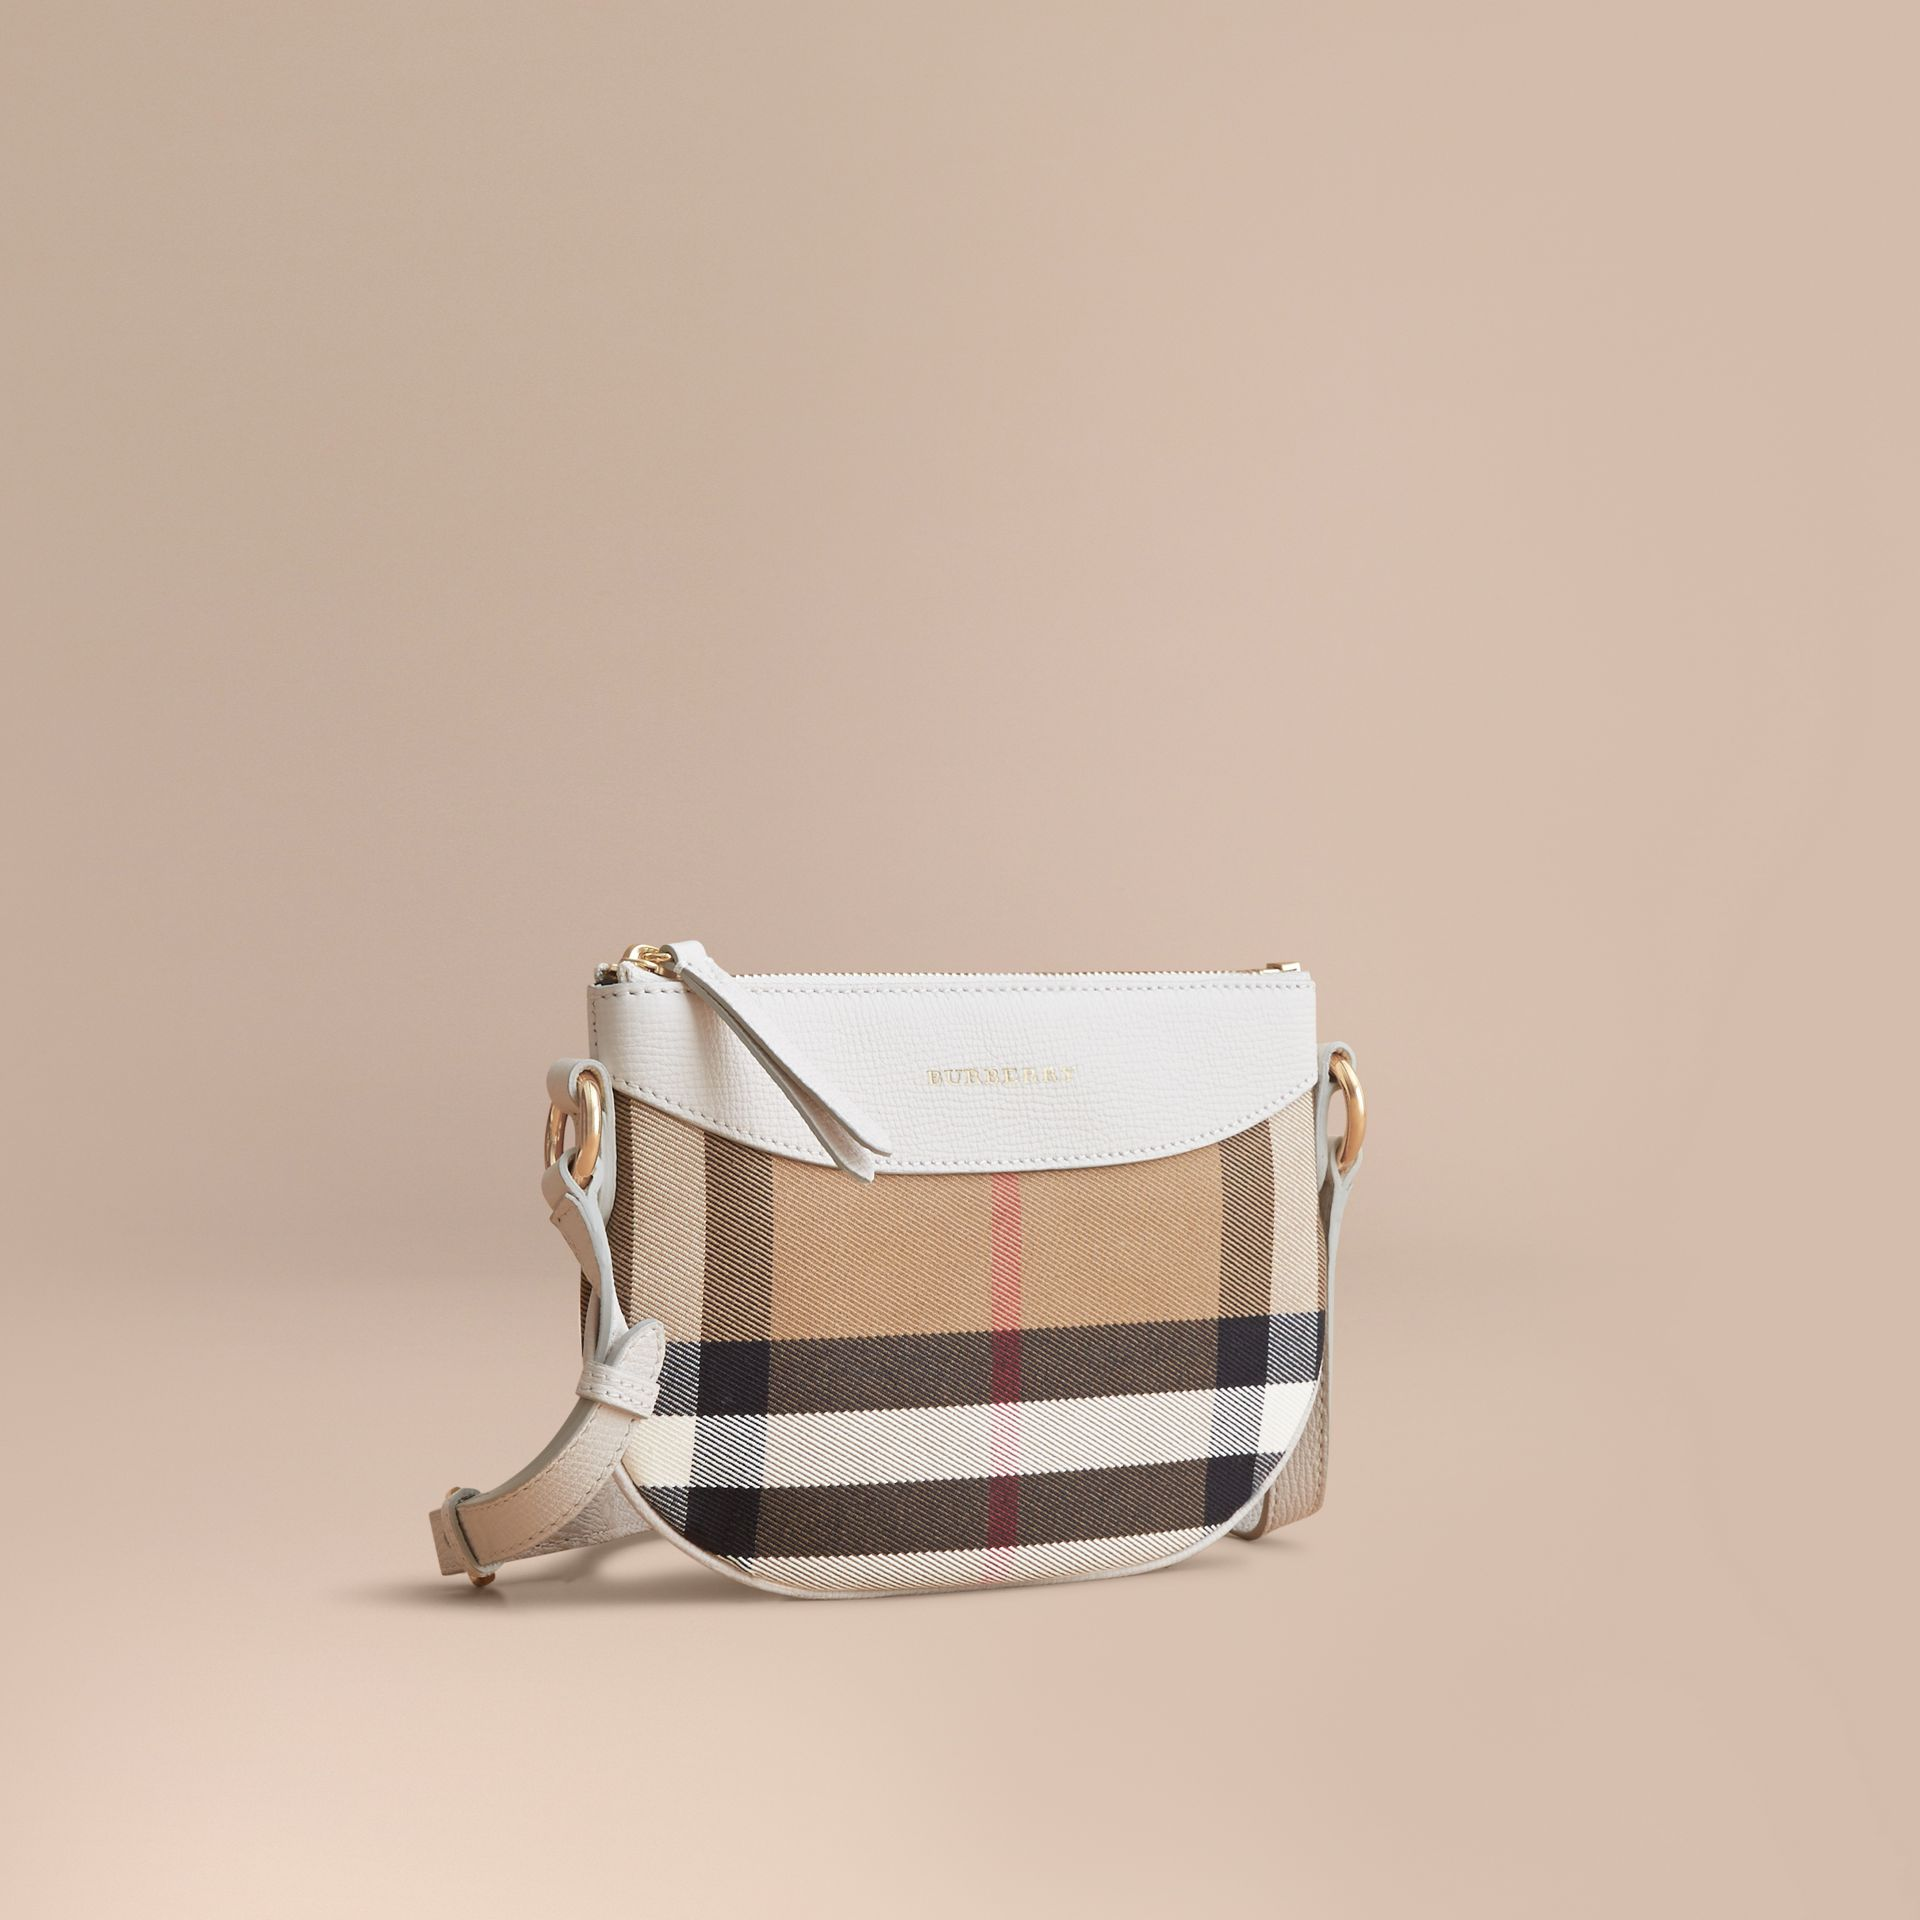 House Check and Leather Crossbody Bag in Natural - Girl | Burberry - gallery image 1